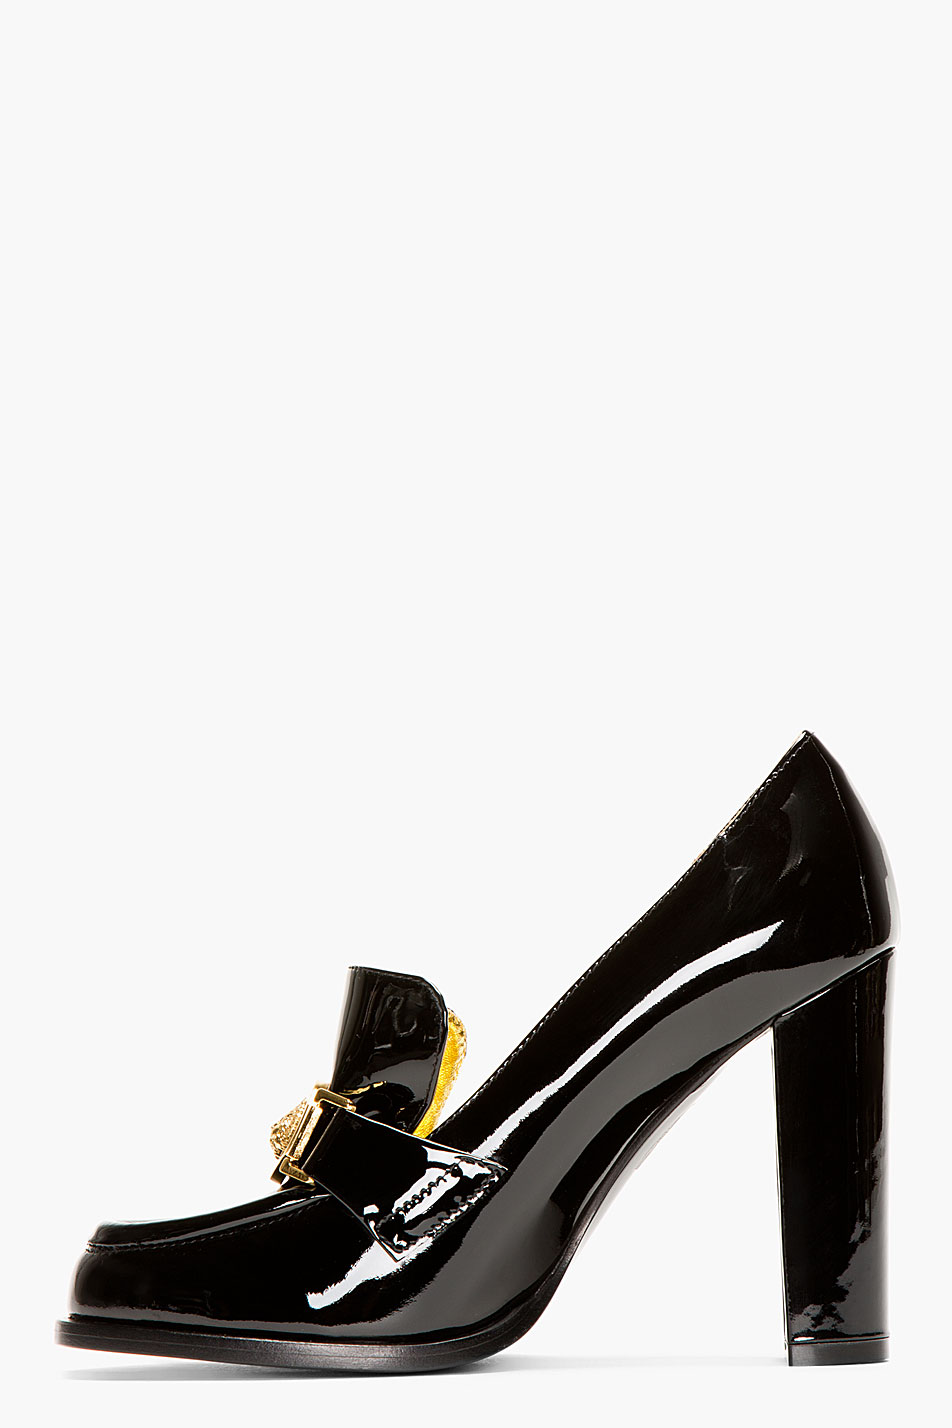 Lyst Versus Black Patent Leather Heeled Loafers In Black